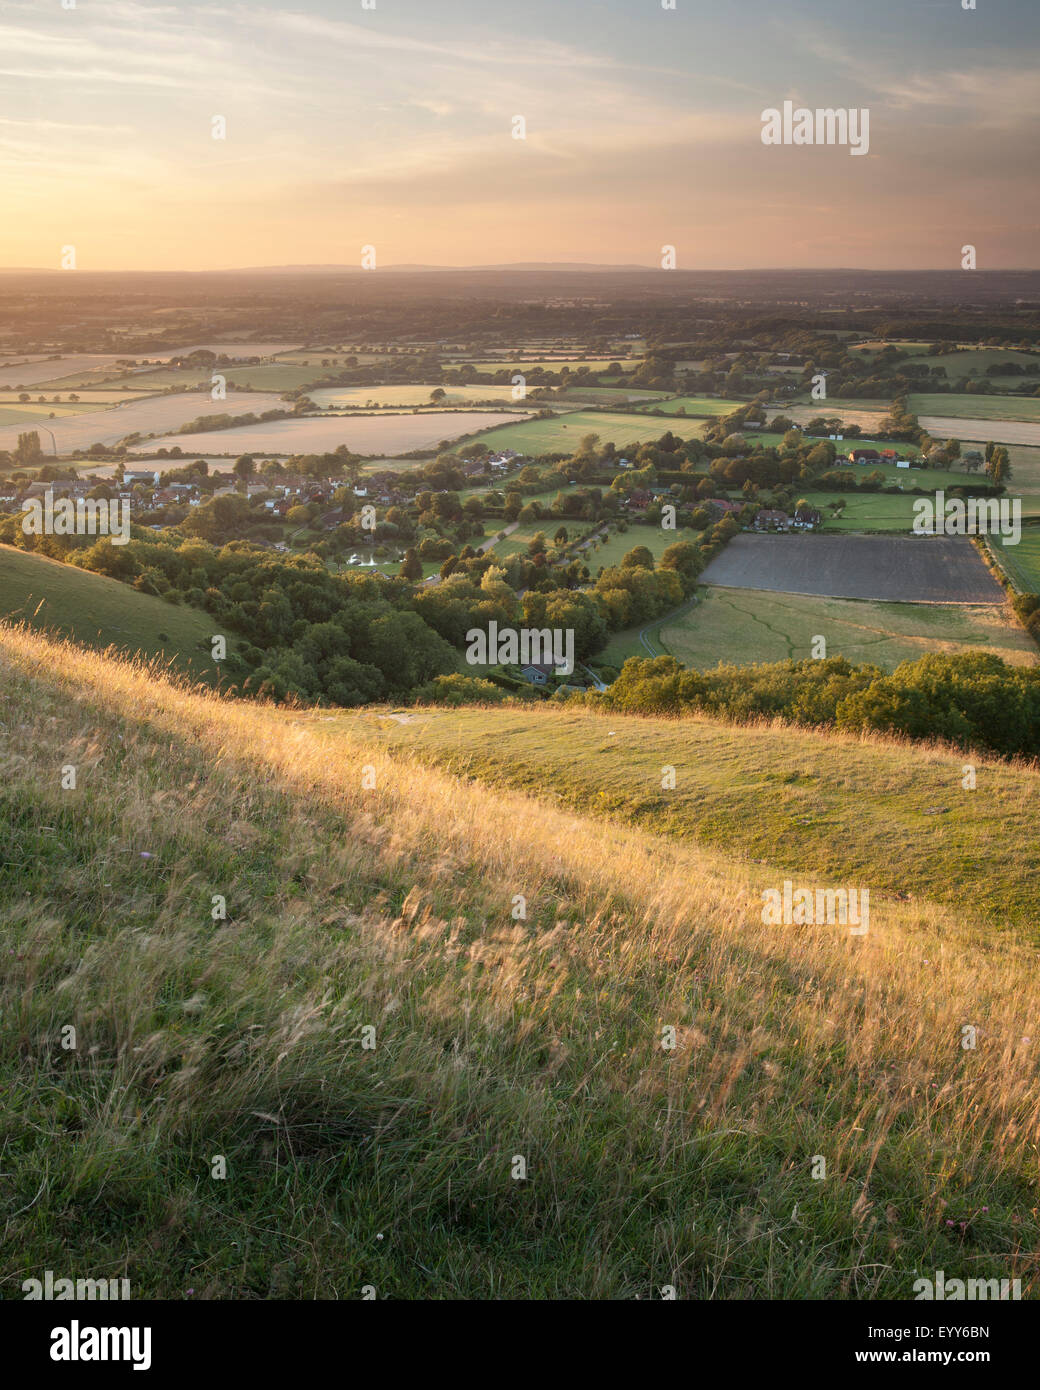 The view from the South Downs near Devil's Dyke to the village of Fulking, West Sussex, England - Stock Image